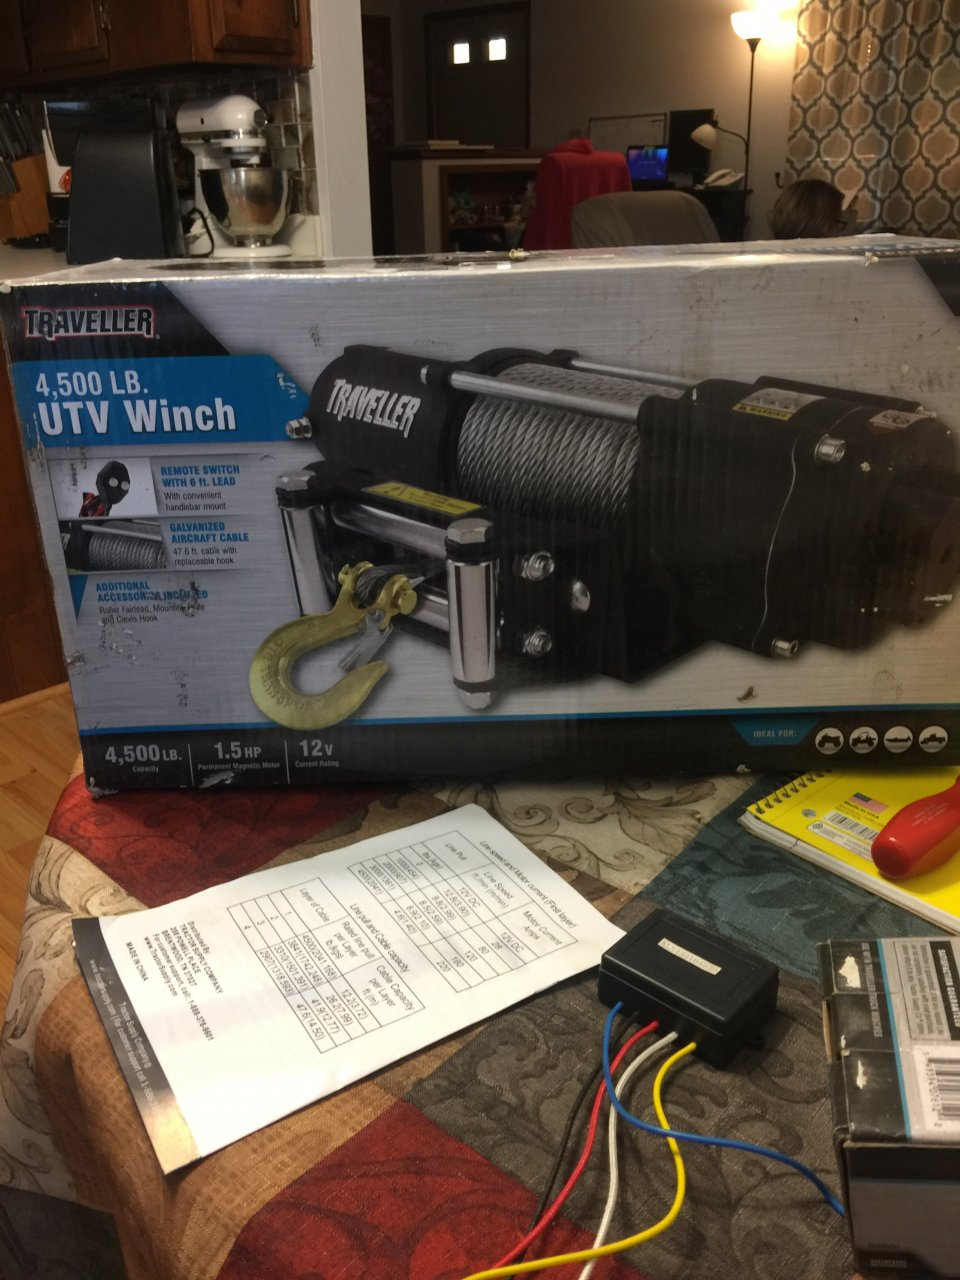 I Have A Traveller Lb Winch Model And Need